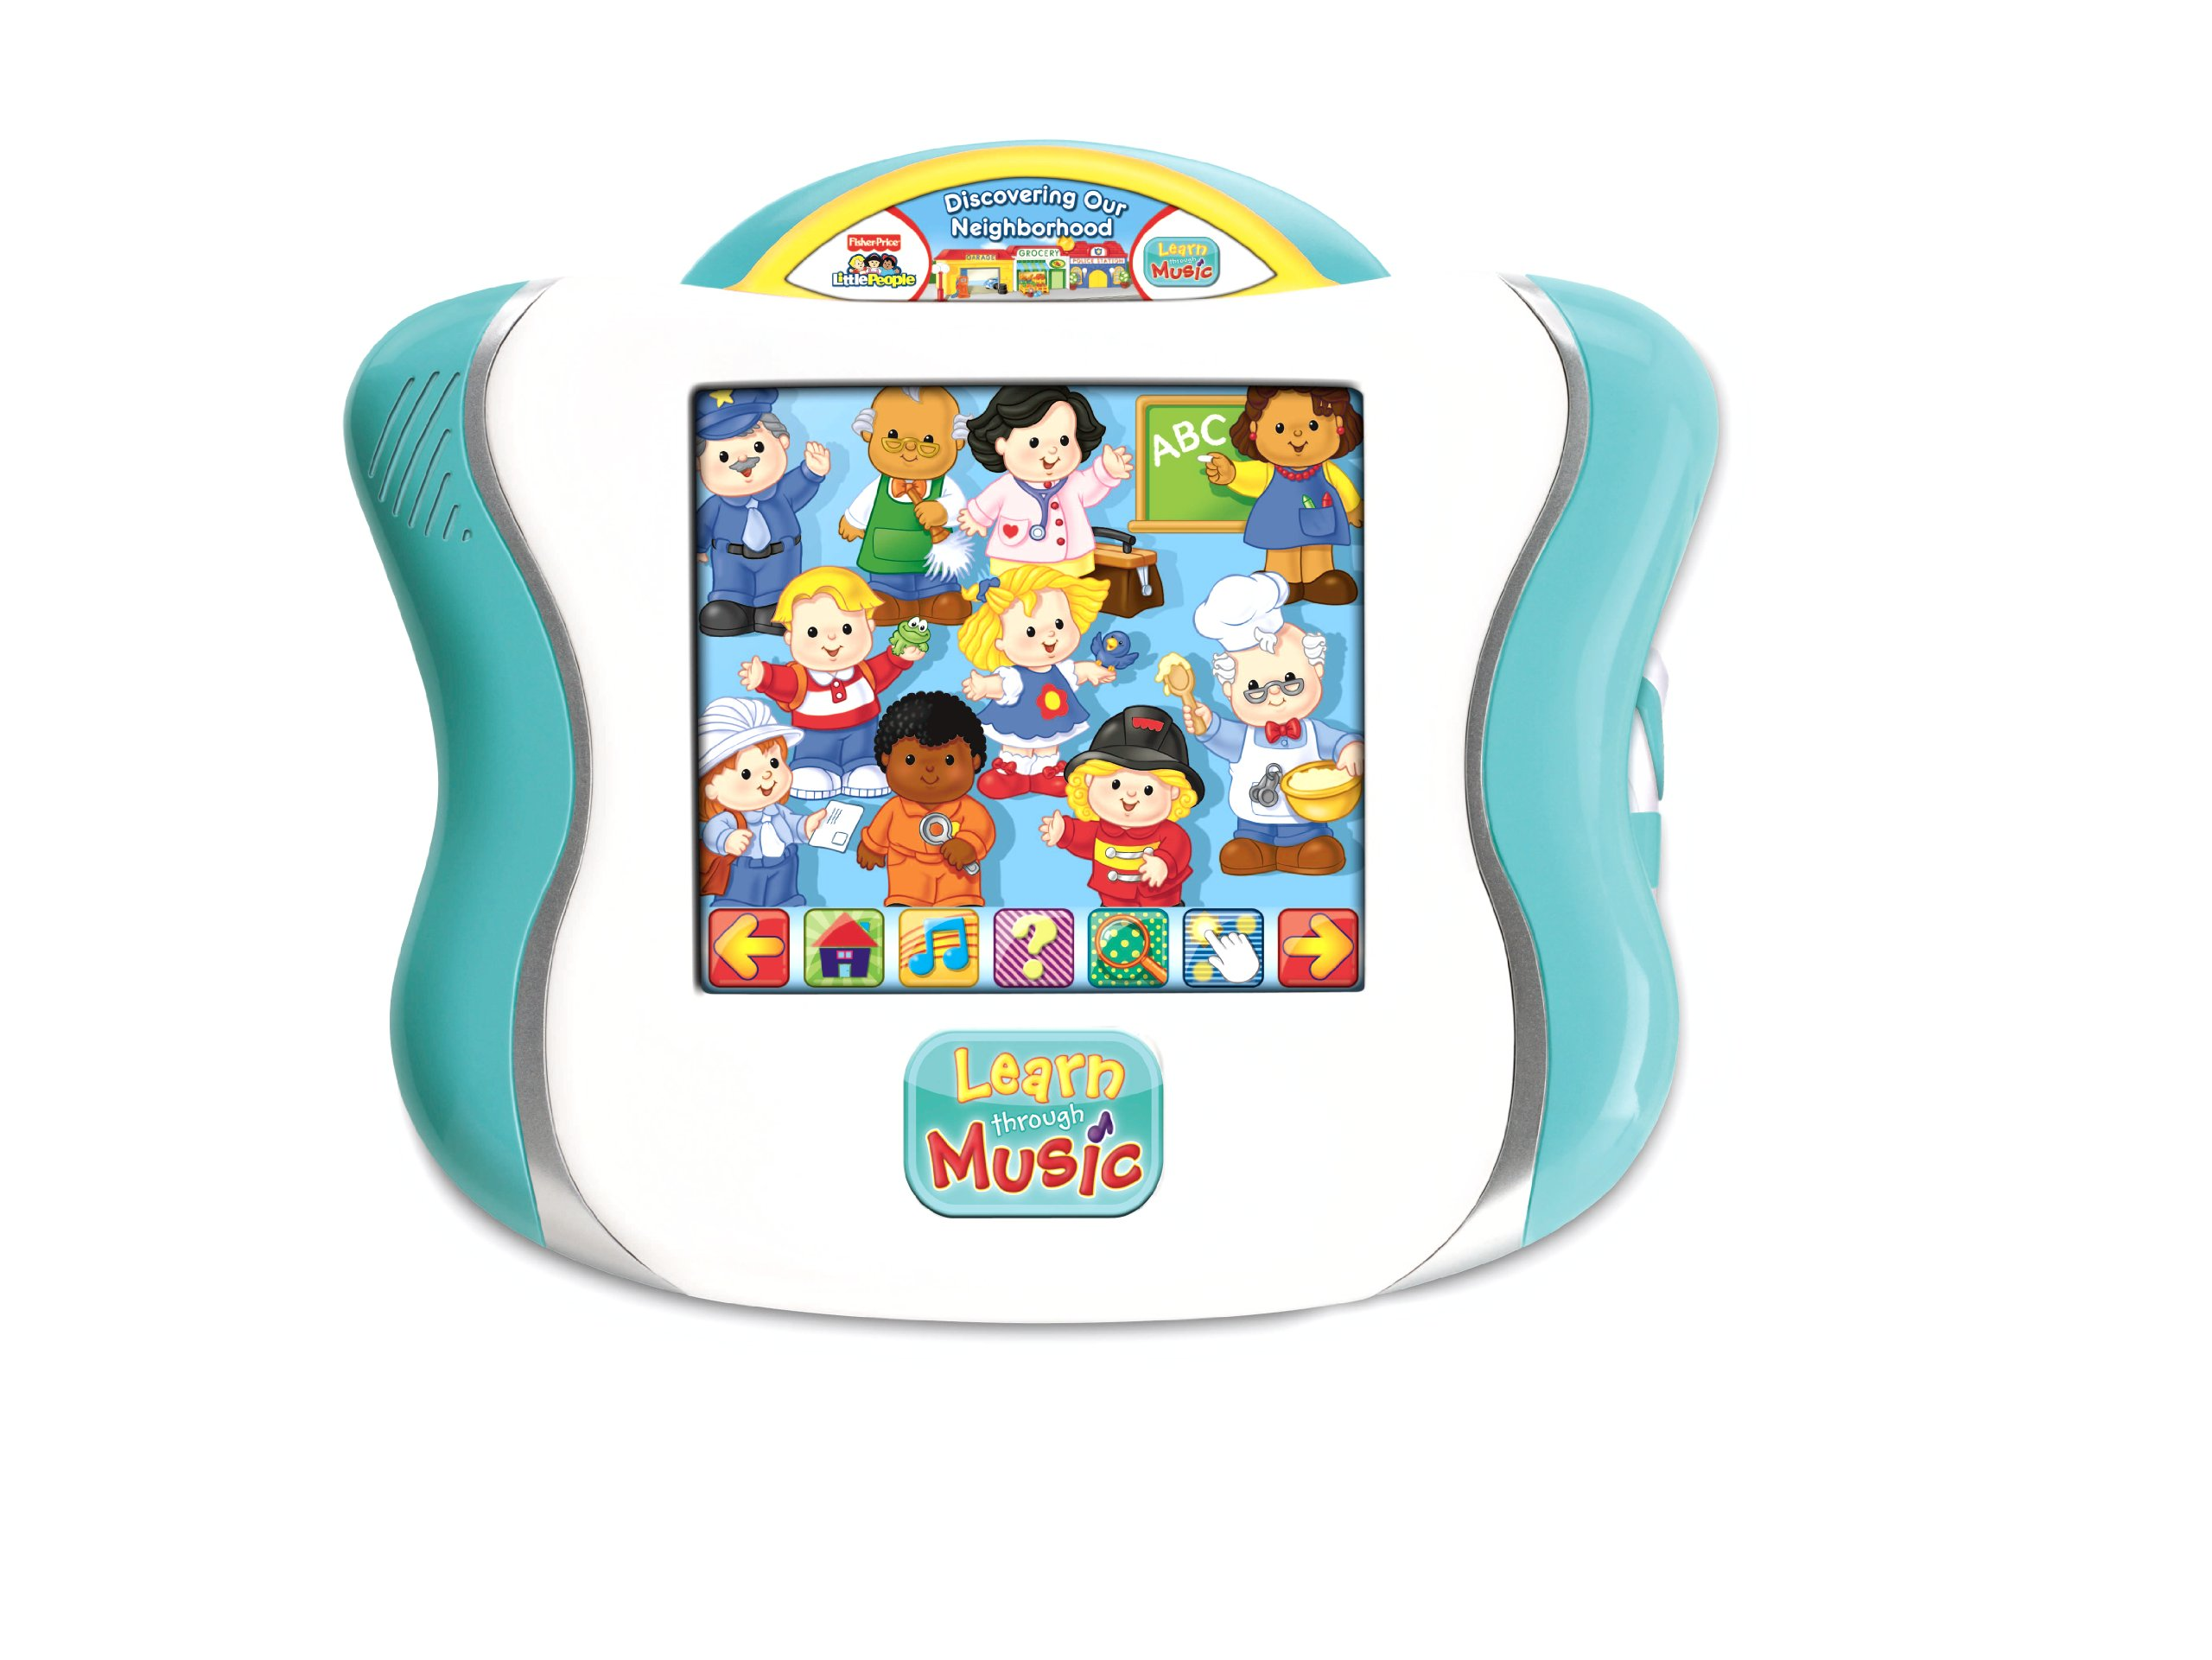 Fisher-Price Learn Through Music Touchpad Software - Little People's Discovering The Neighborhood by Fisher-Price